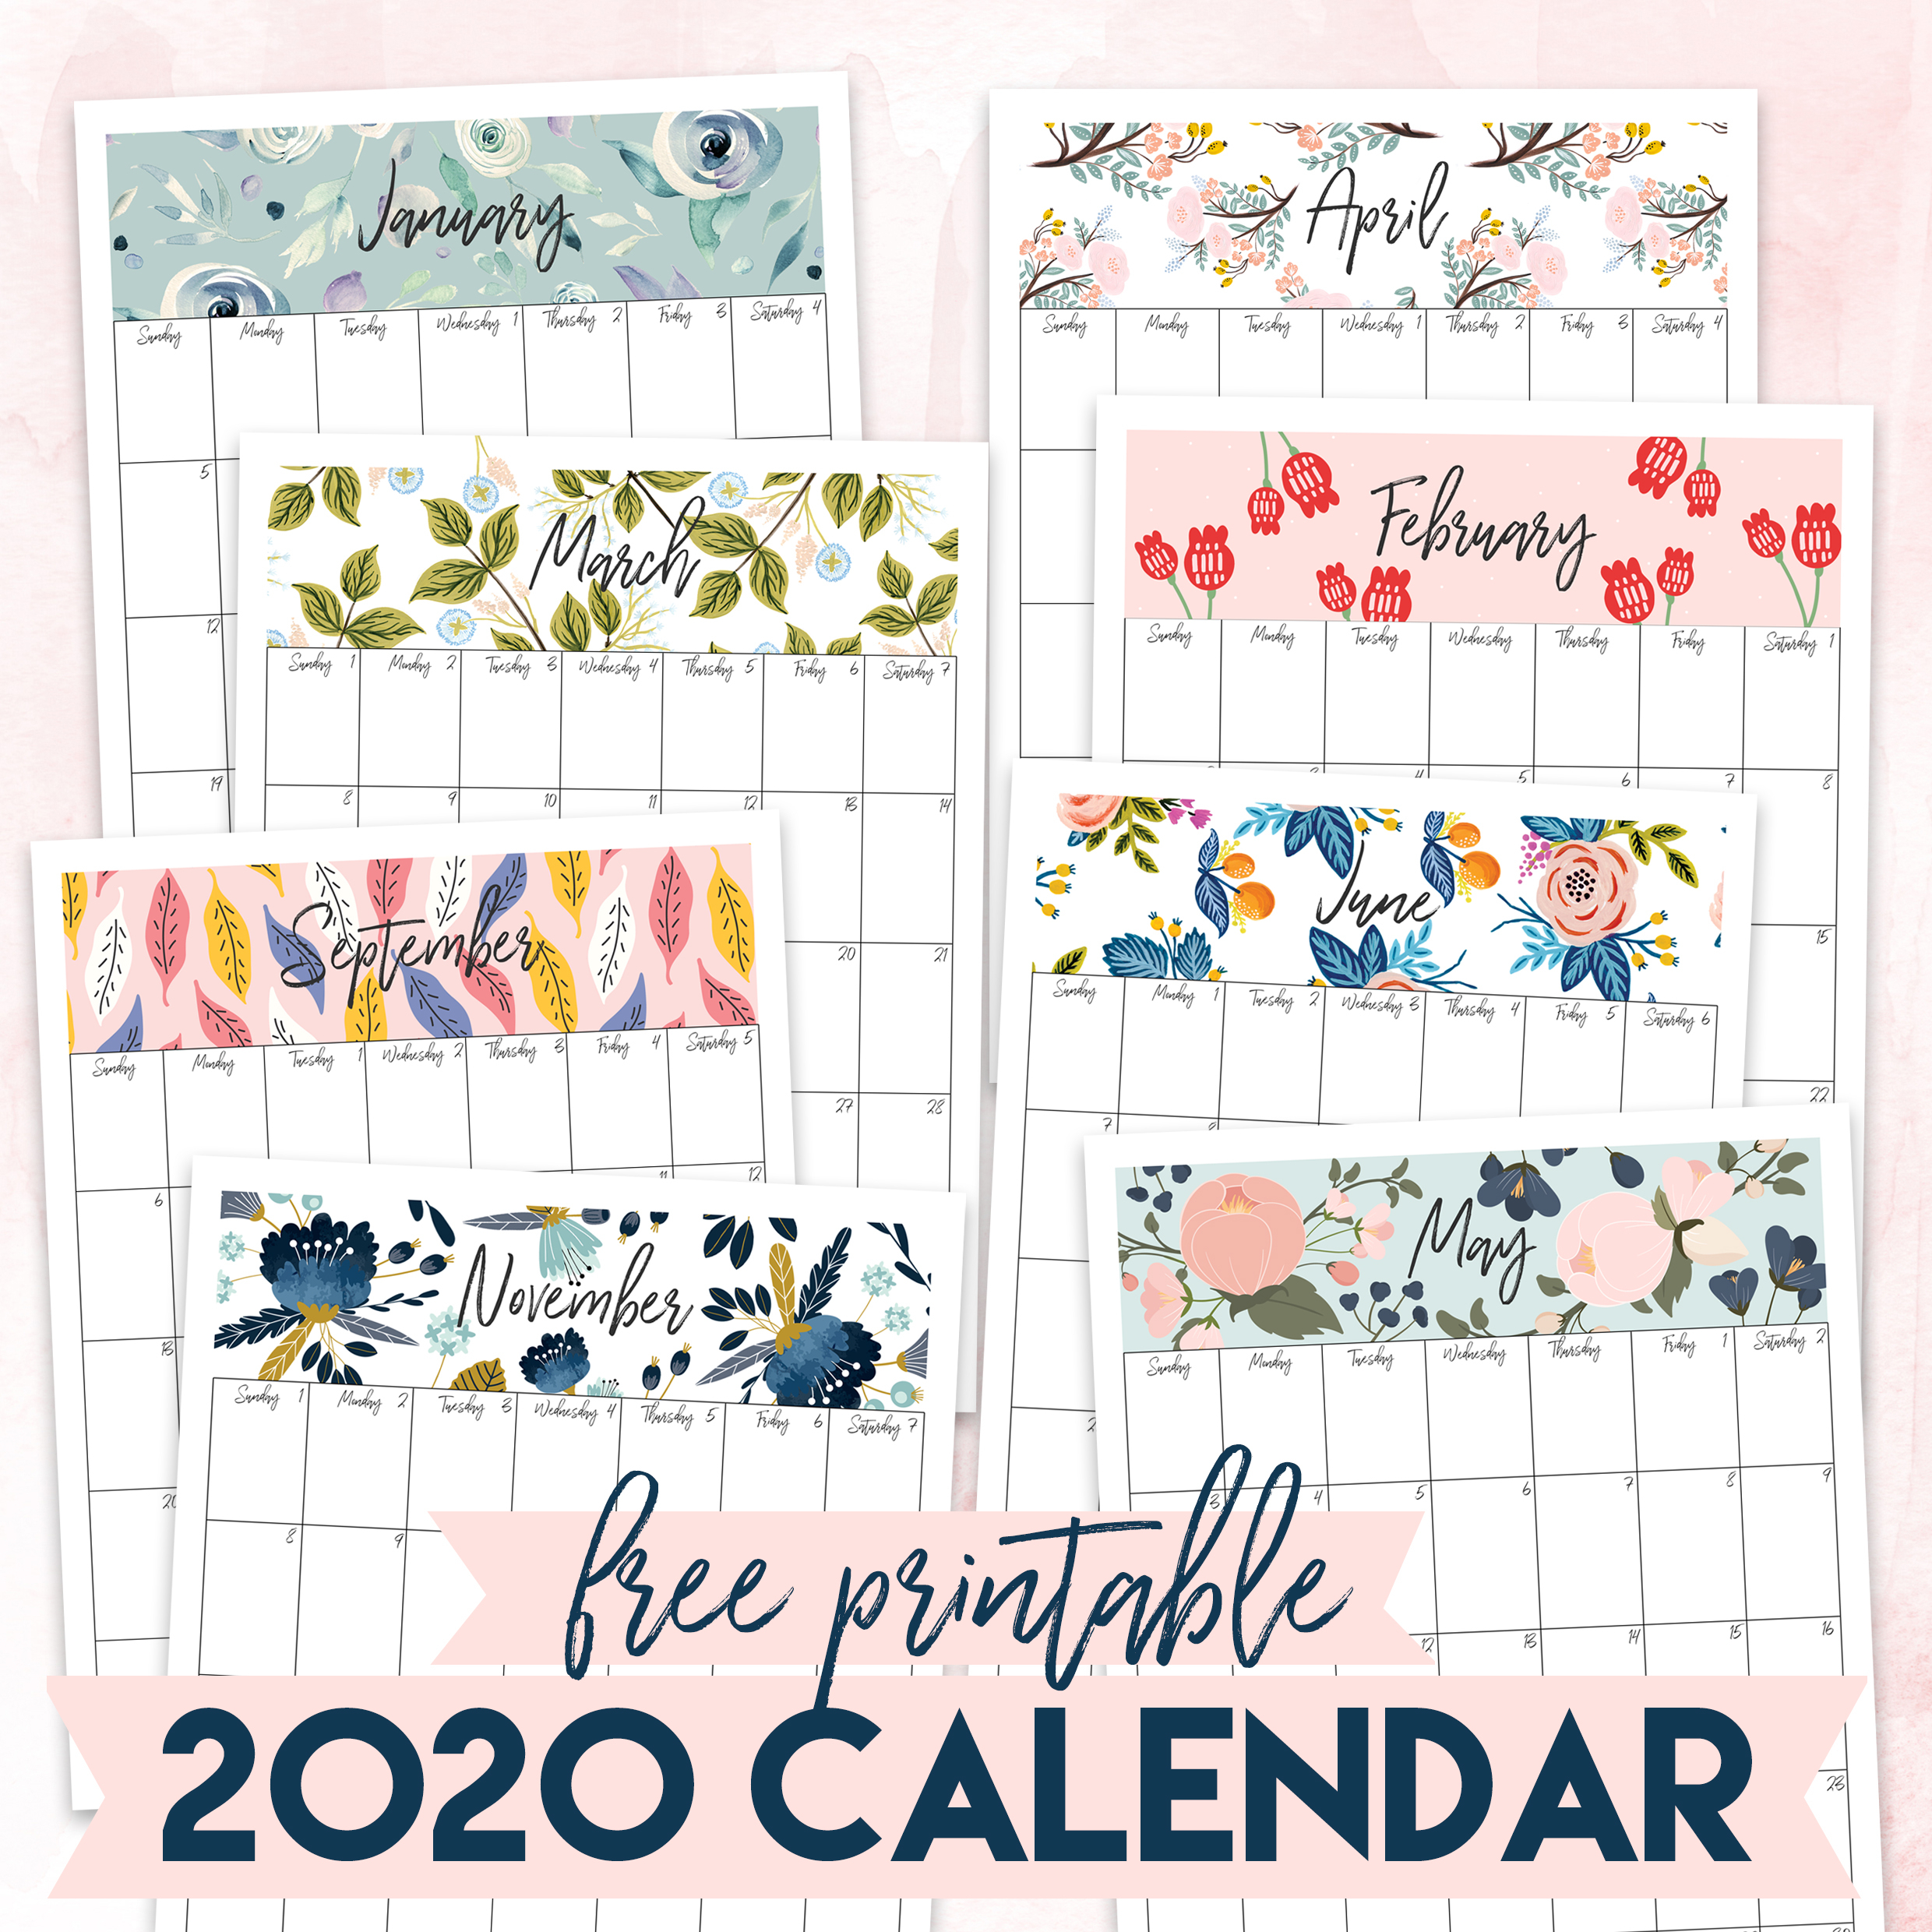 Free Printable 2020 Calendar - The Craft Patch